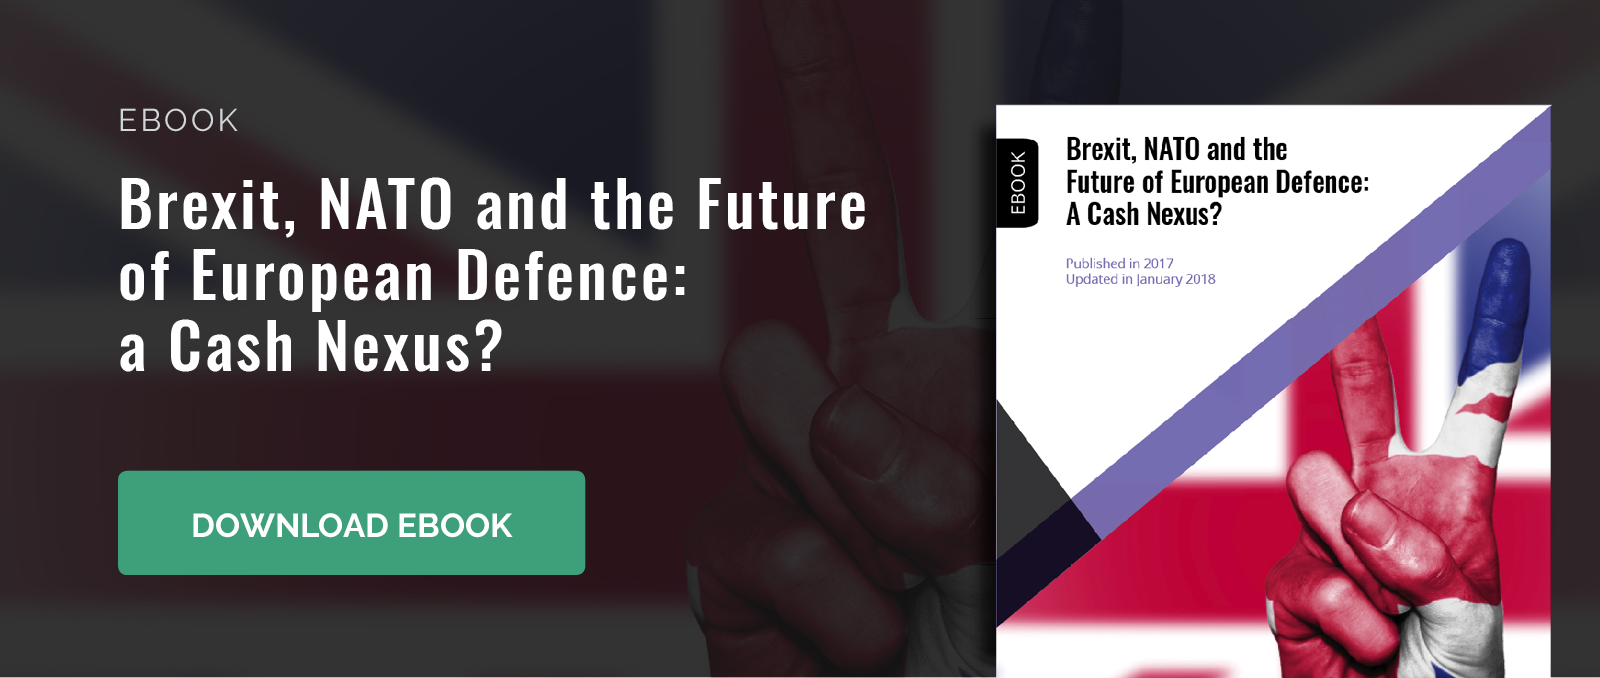 brexit NATO and the future of European Defence